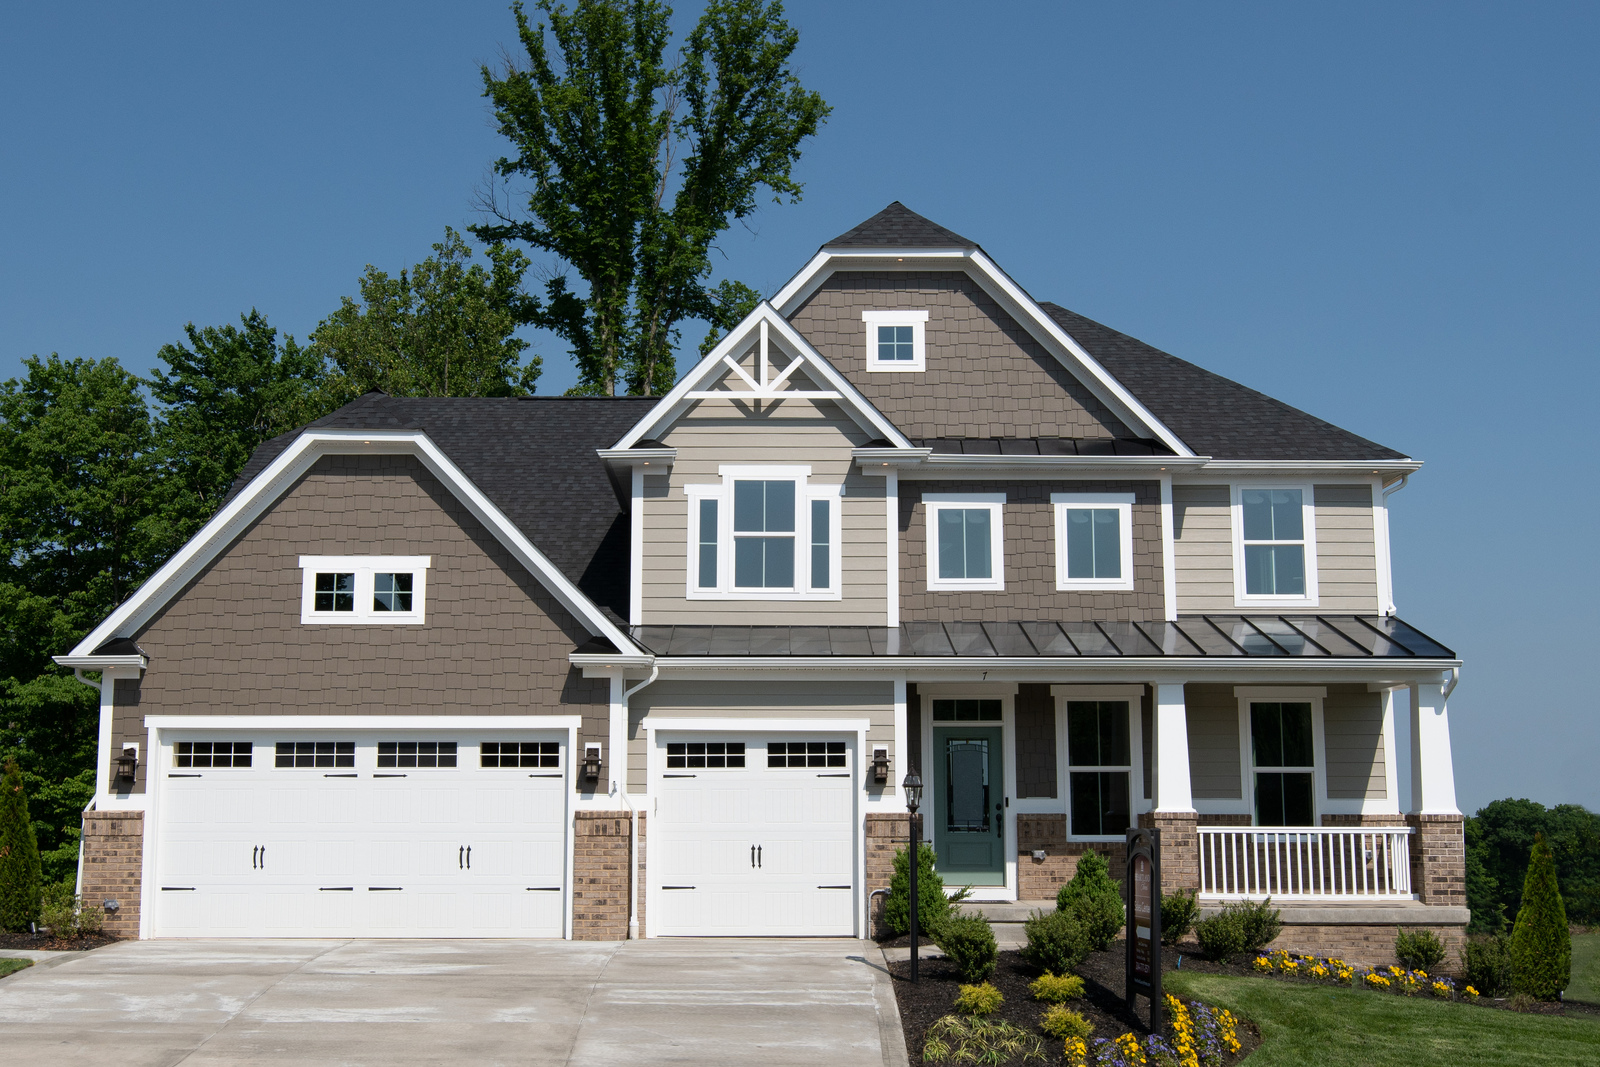 Offering floorplans that include a 3 car garage – for extra storage or additional vehicles!